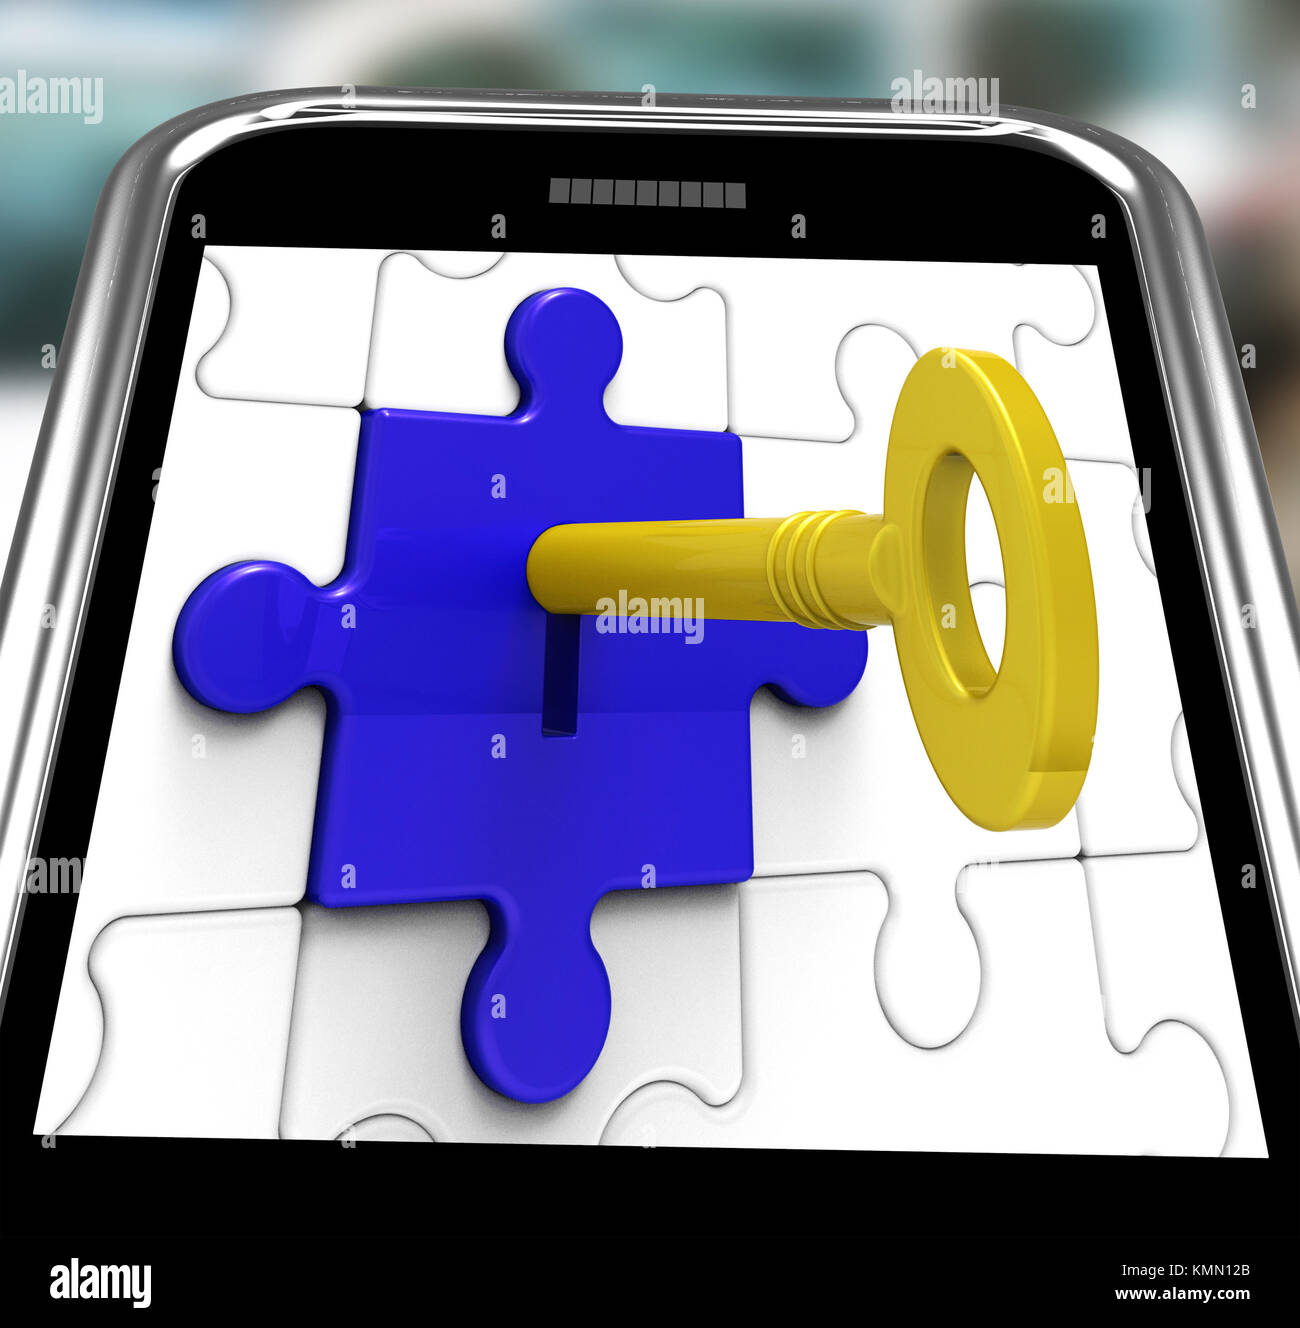 Key In Lock On Smartphone Showing Hidden Secrets And Privacy - Stock Image